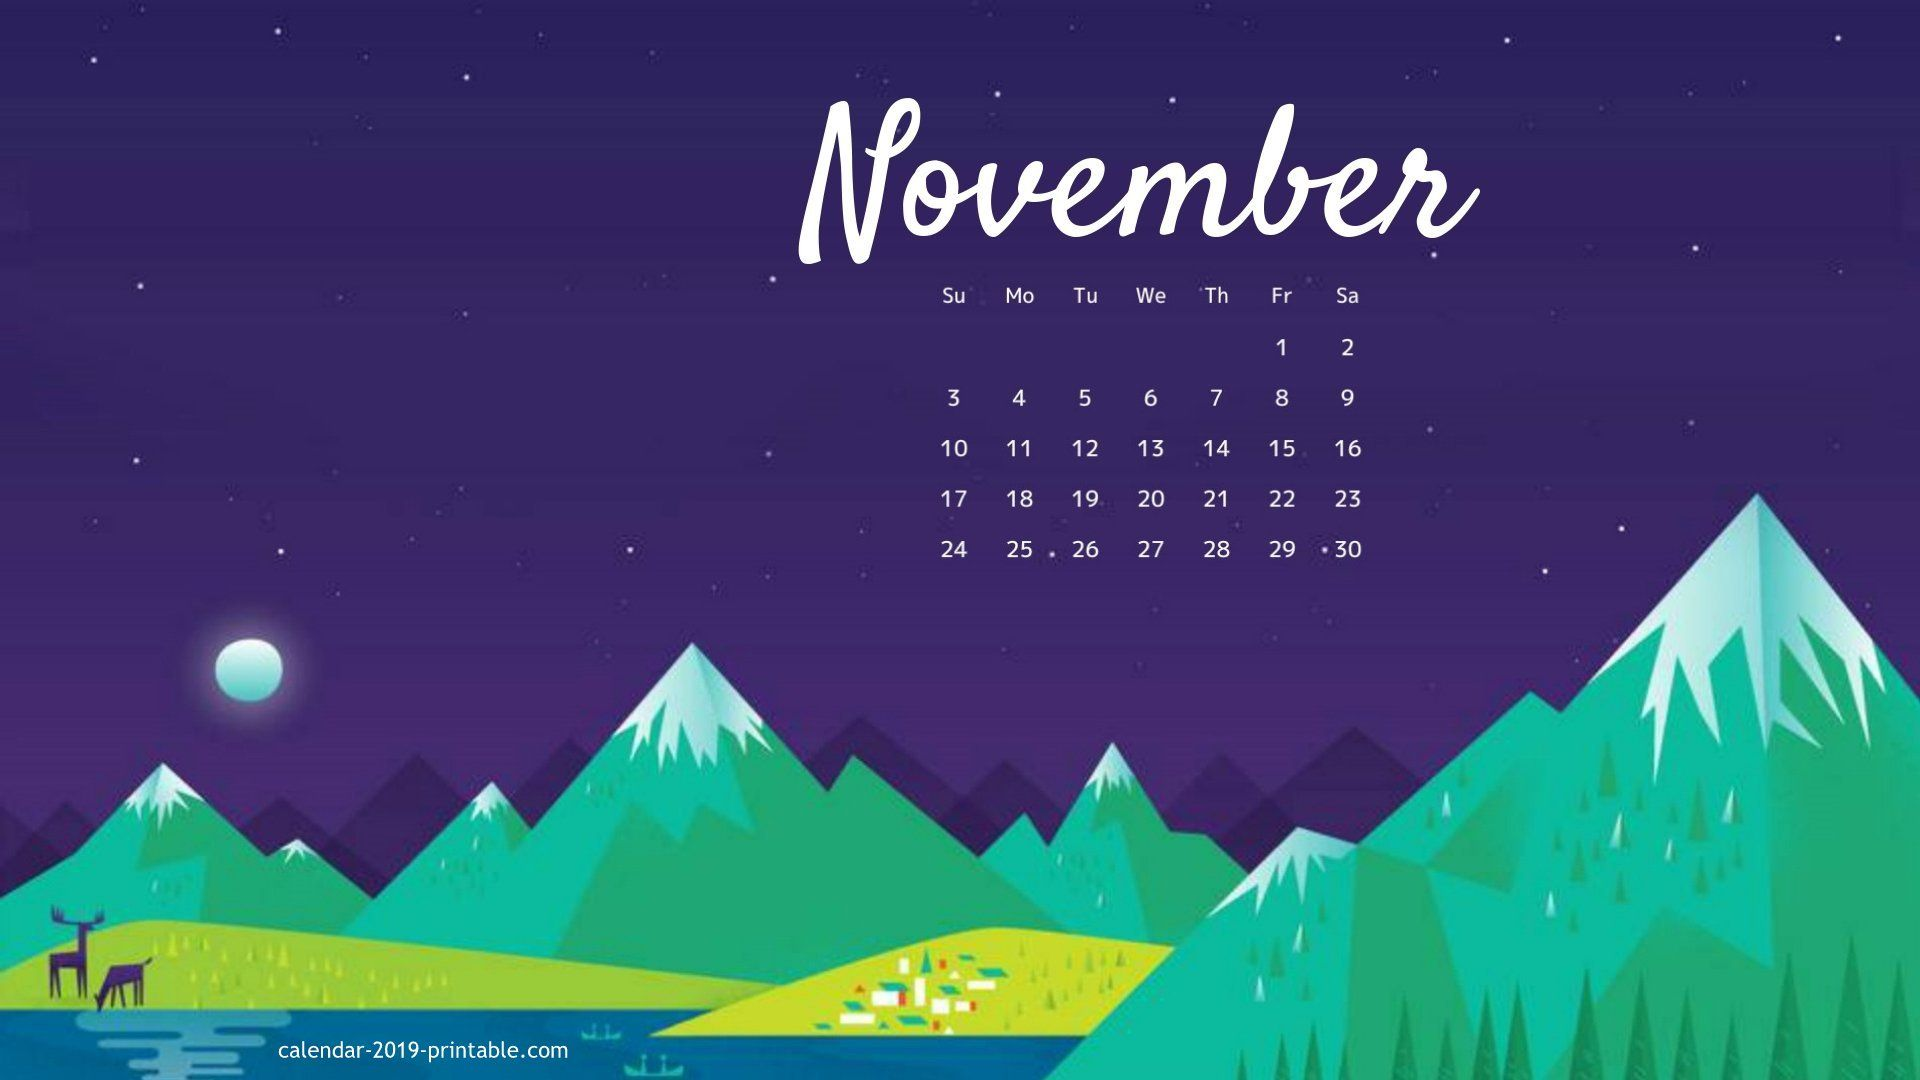 november 2019 calendar desktop wallpaper Calendar